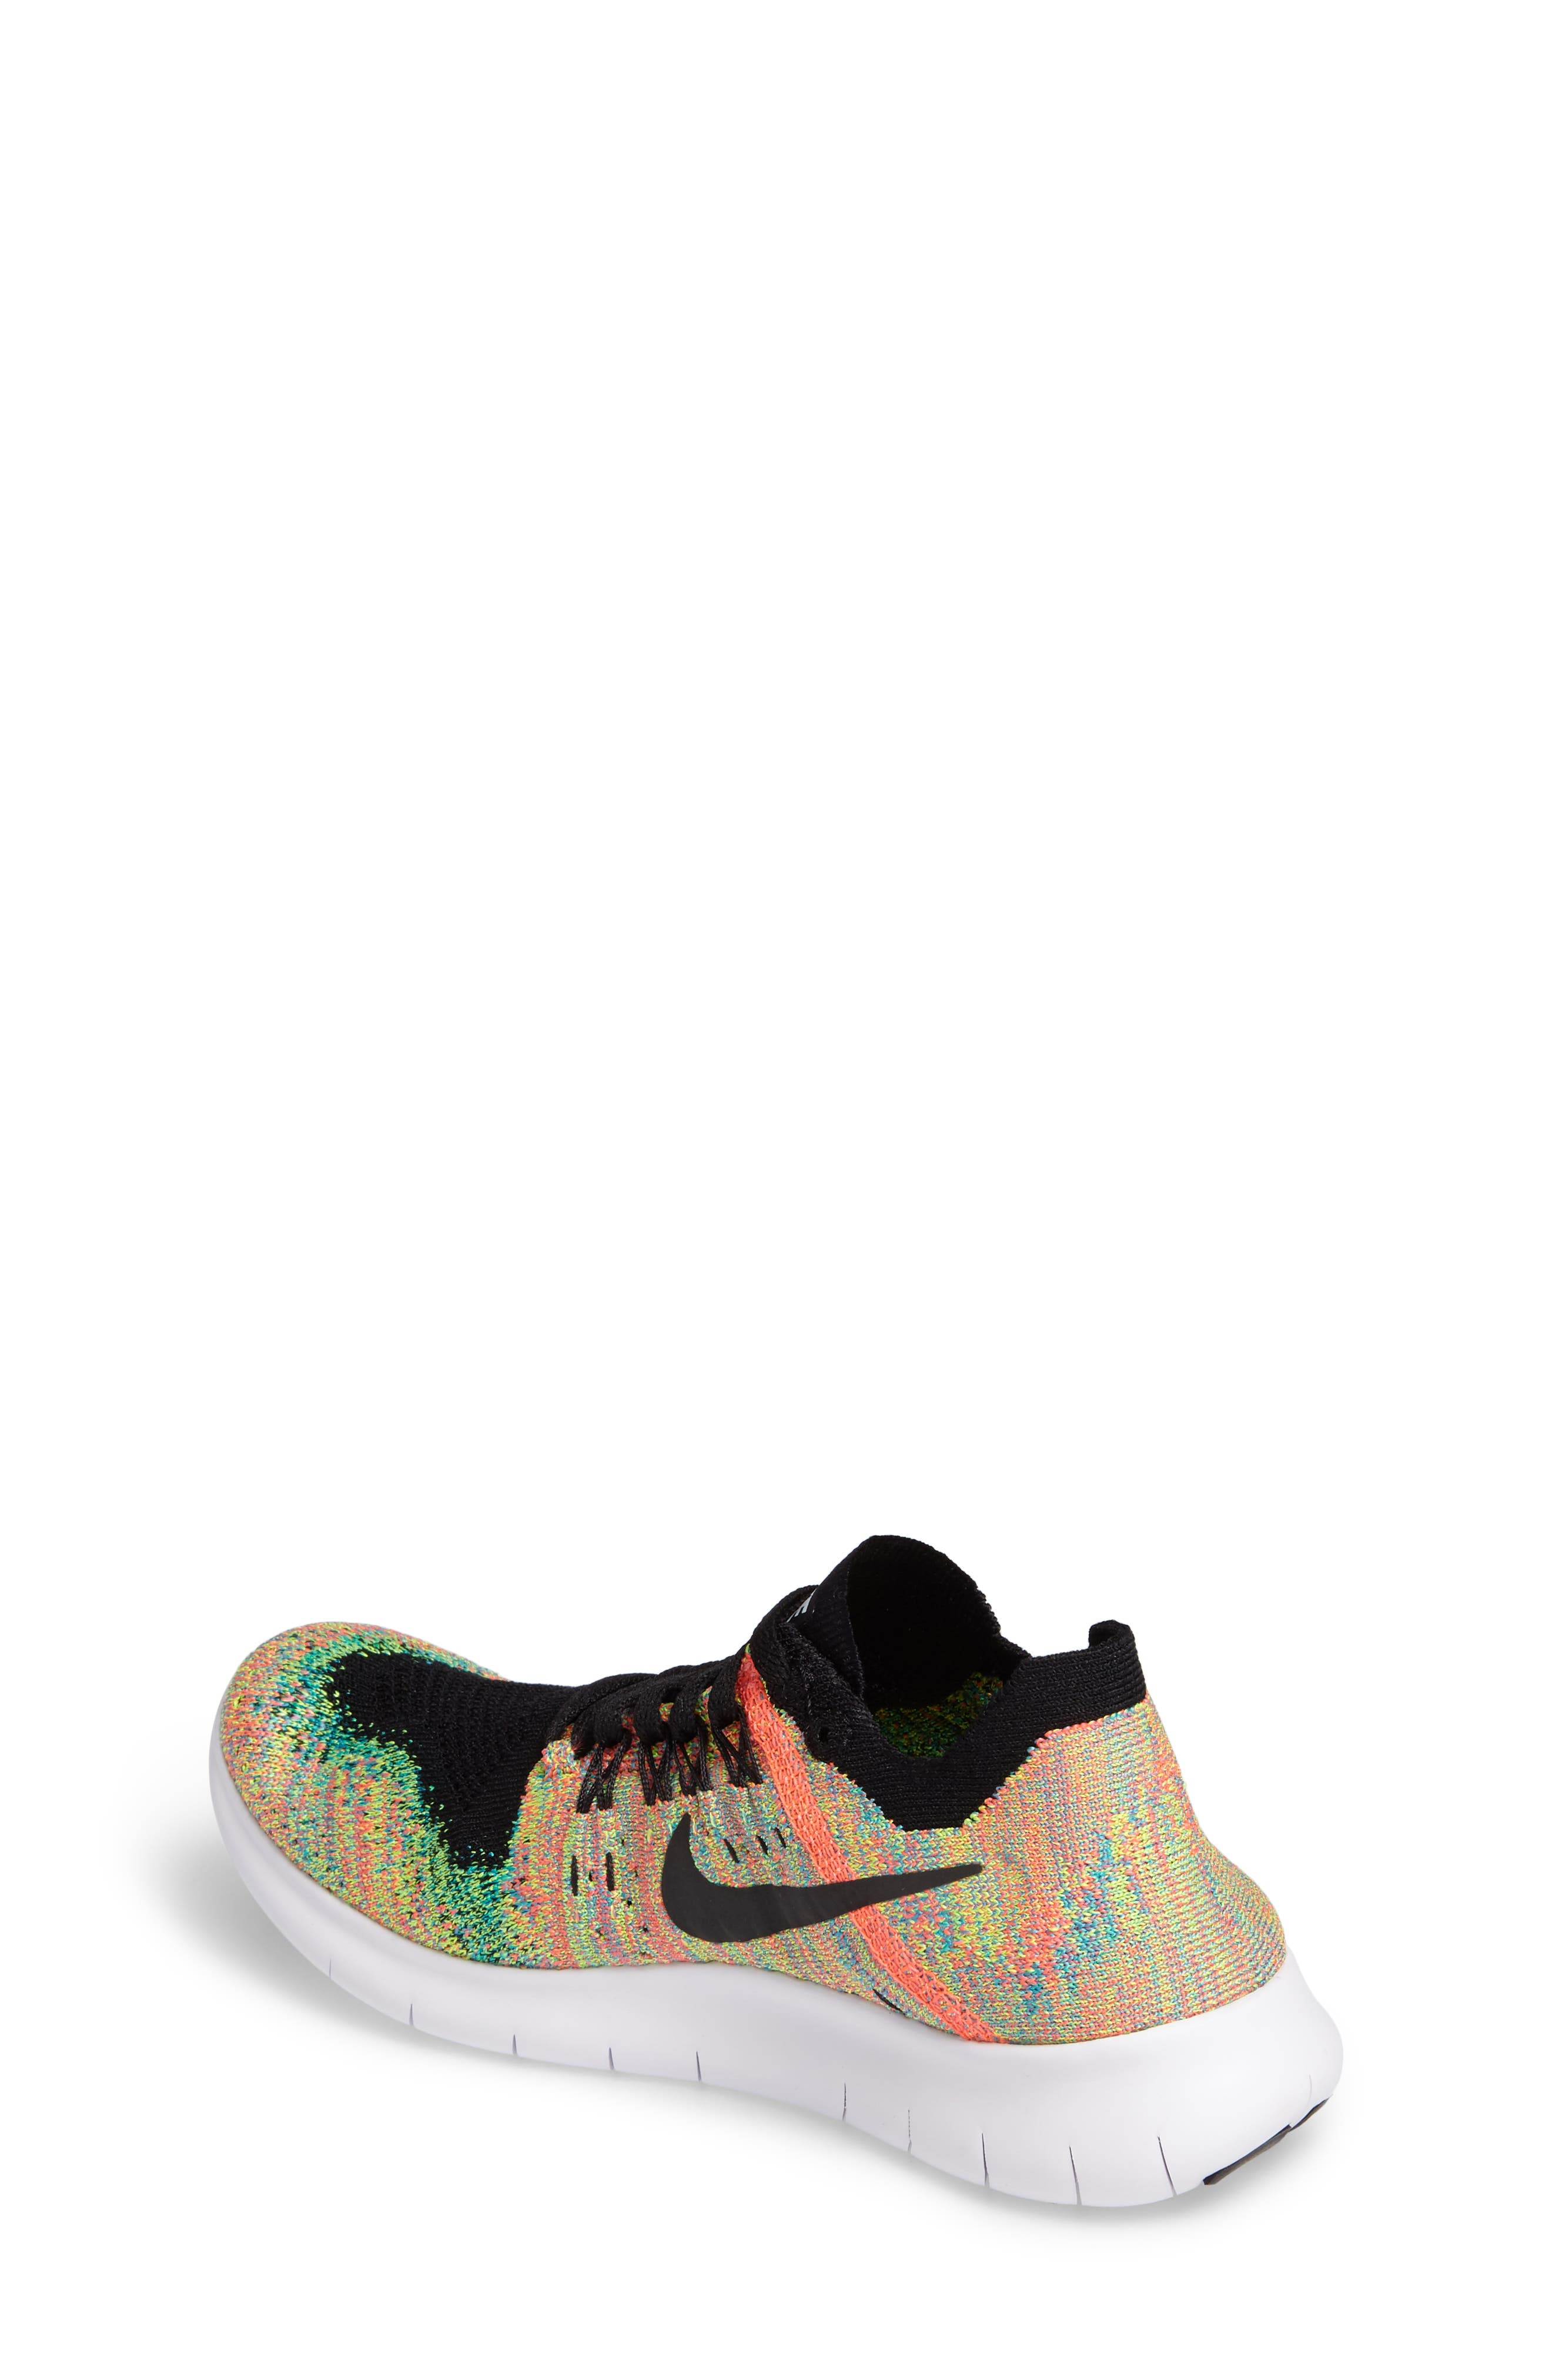 Free RN Flyknit 2017 Running Shoe,                             Alternate thumbnail 2, color,                             001